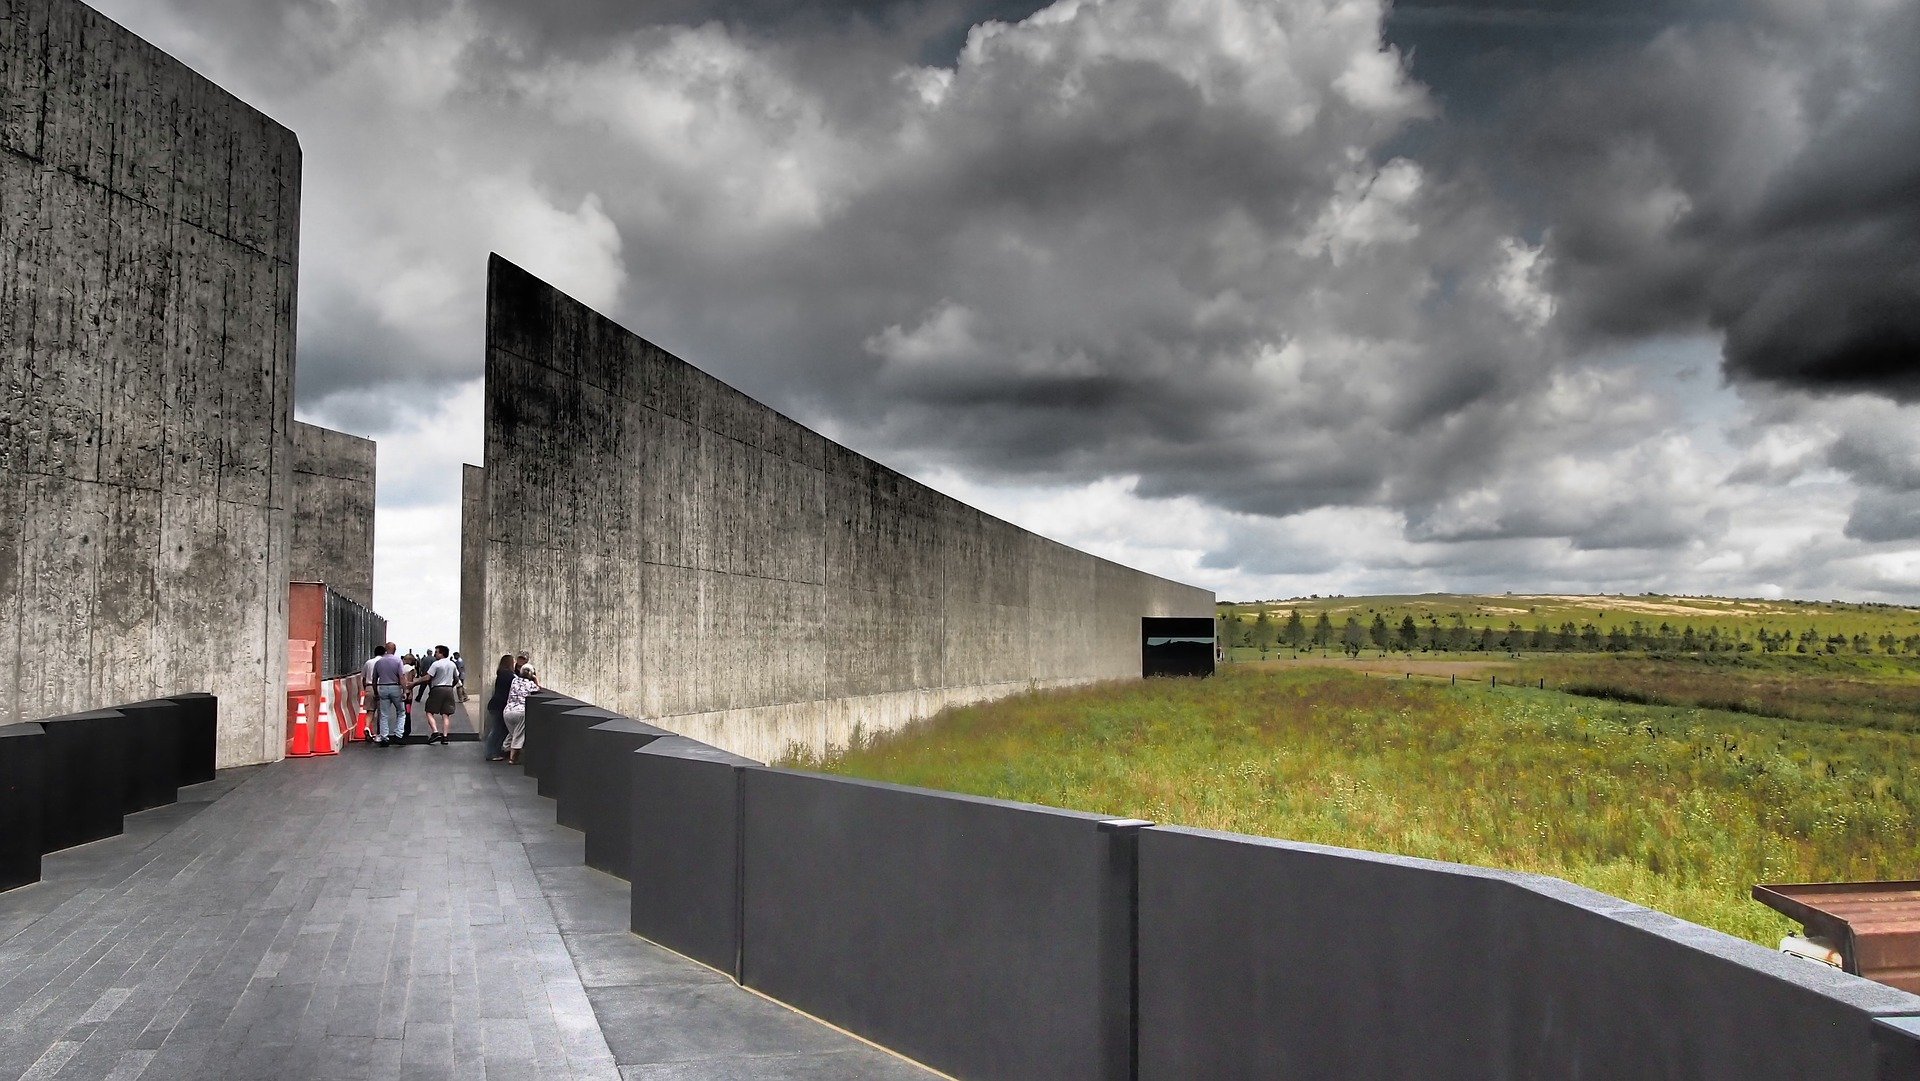 Flight 93 Memorial in Shanksville, PA - Image by  A. H.  from  Pixabay